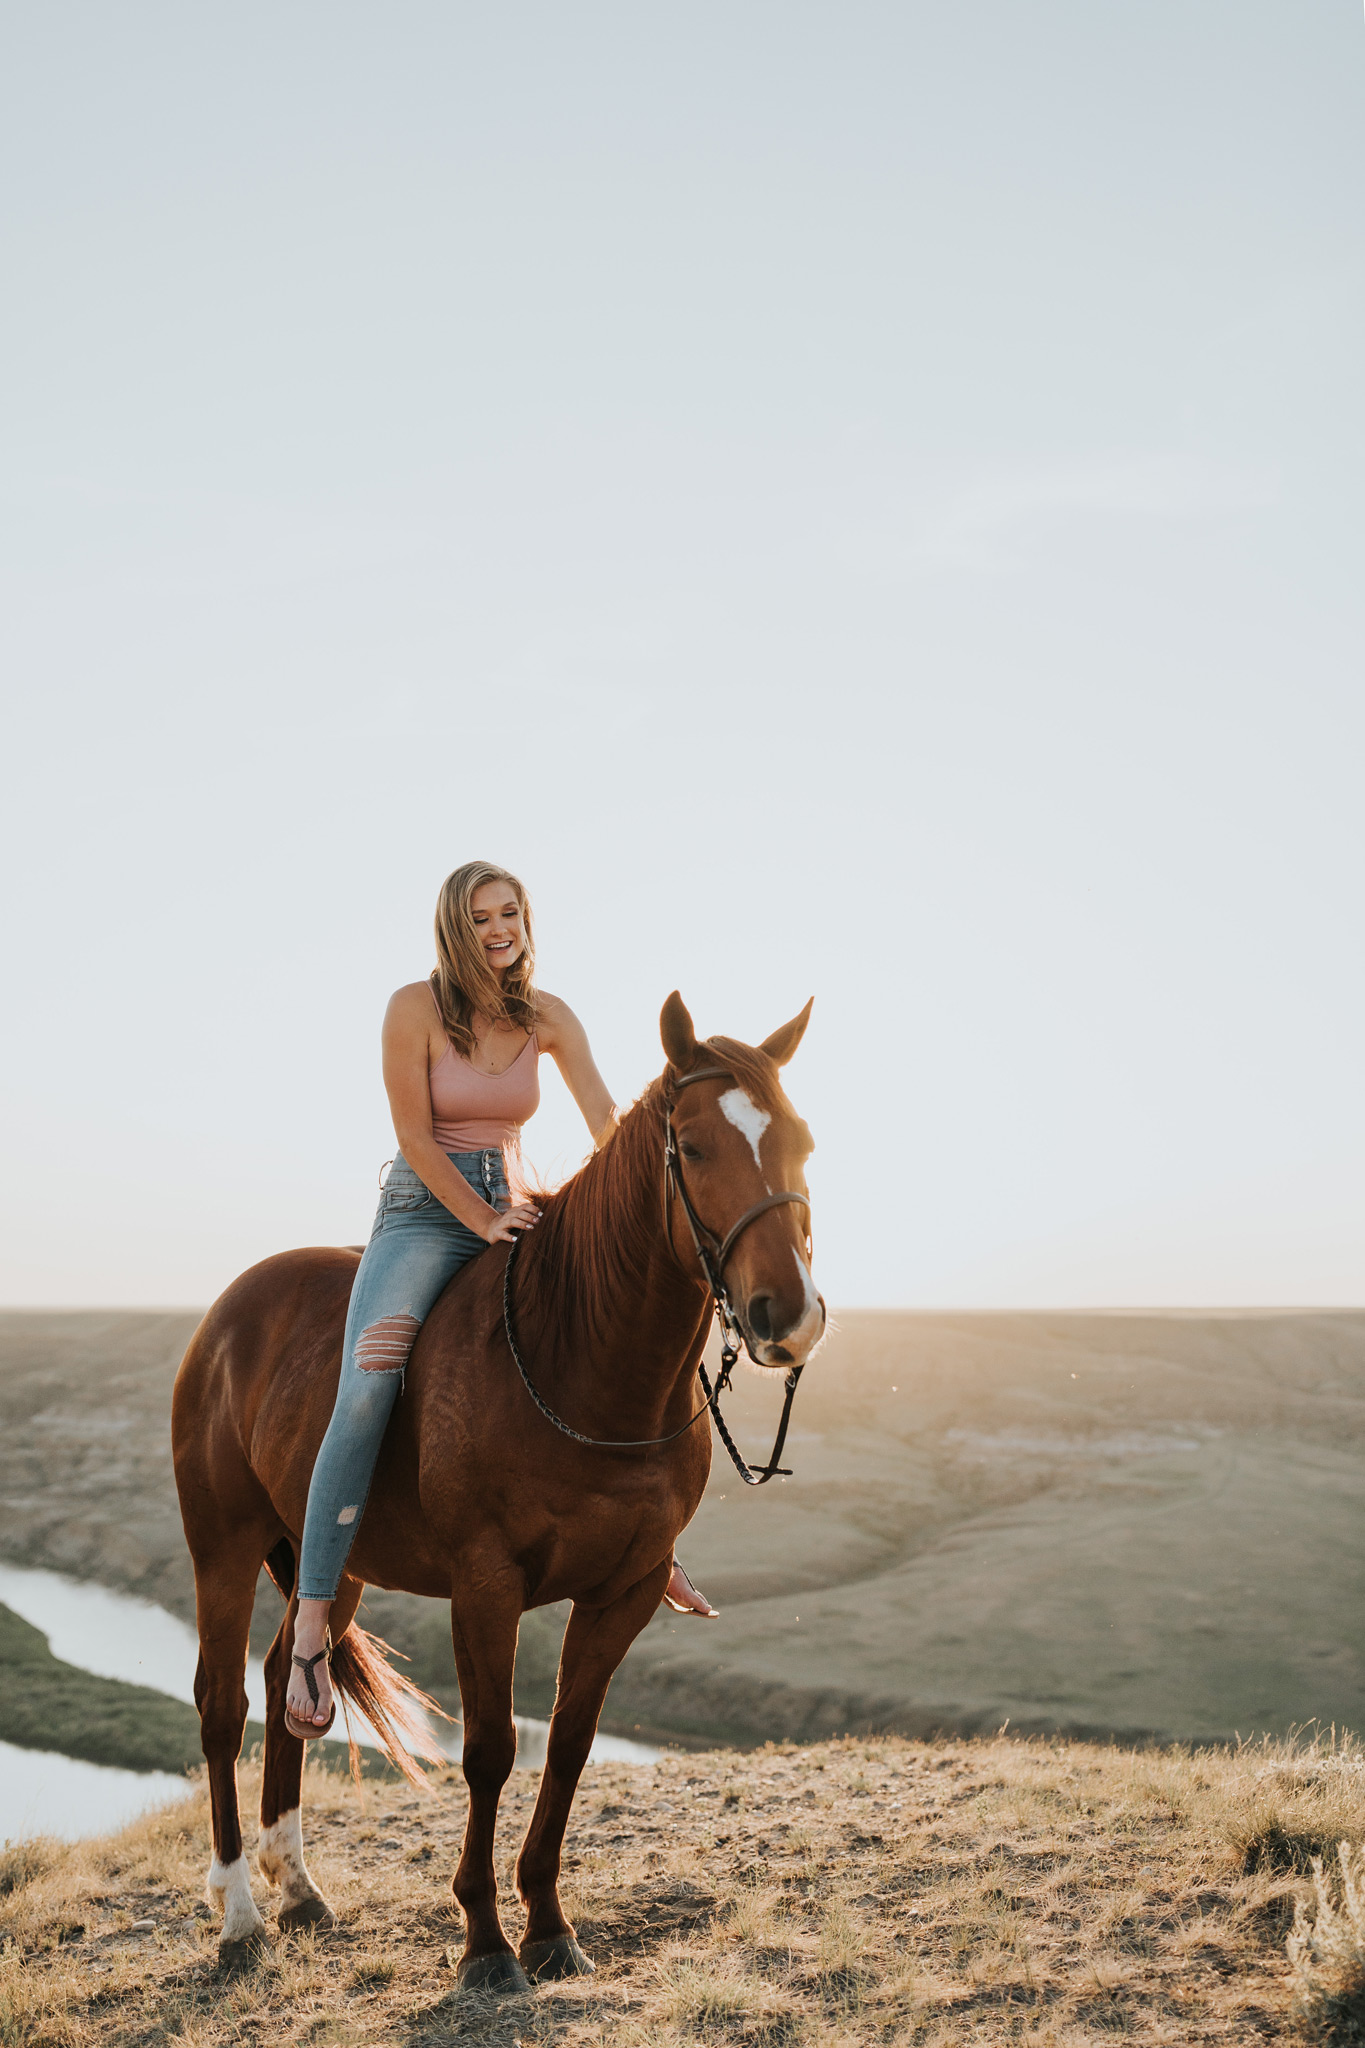 girl on horse laughing equestrian photo